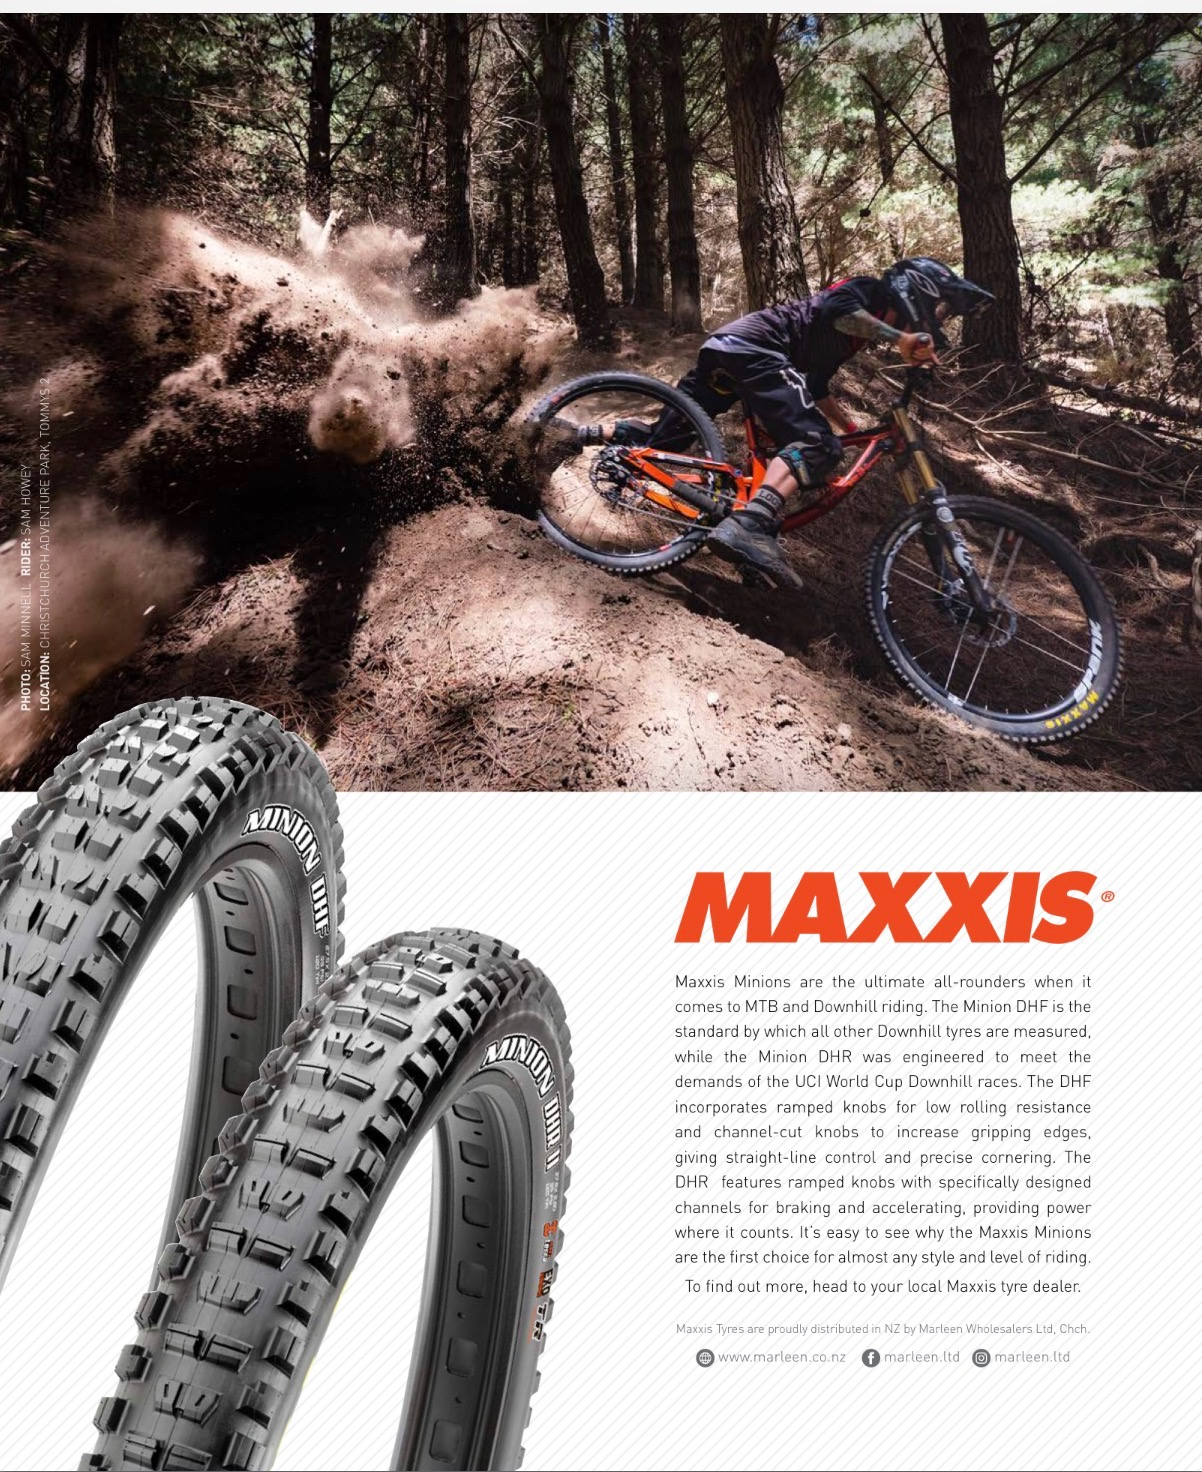 Maxxis Ad